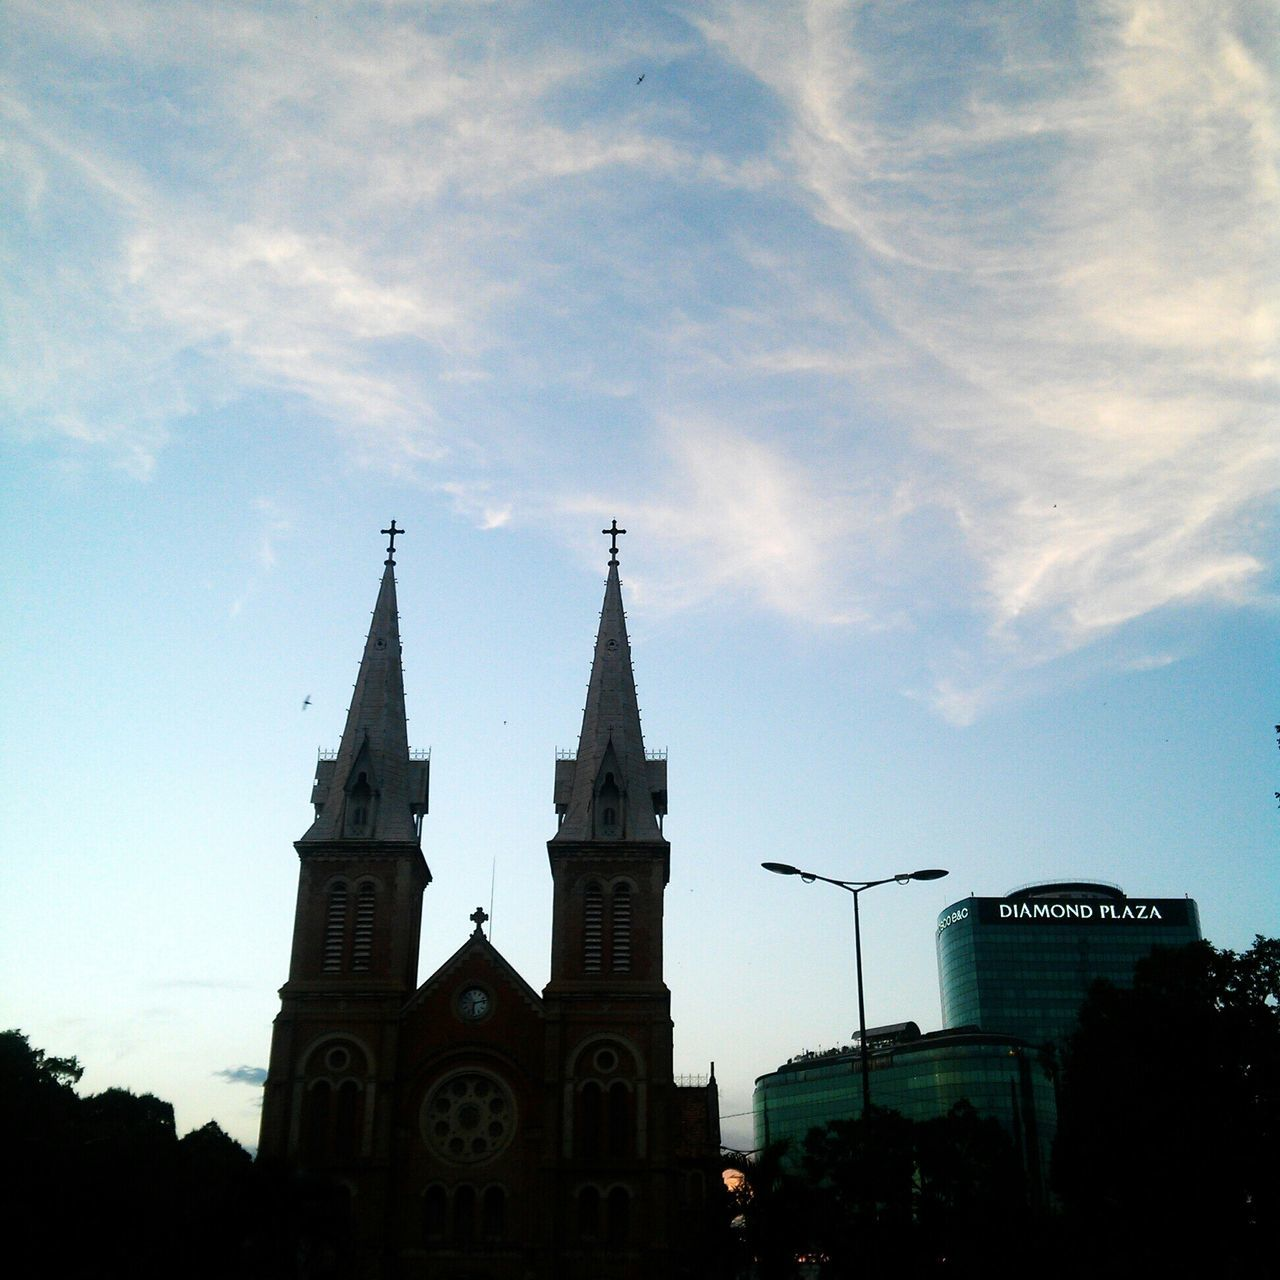 Nhathoducba Hochiminhcity Onmywayhome Nice Weather Nicesky Withfriend